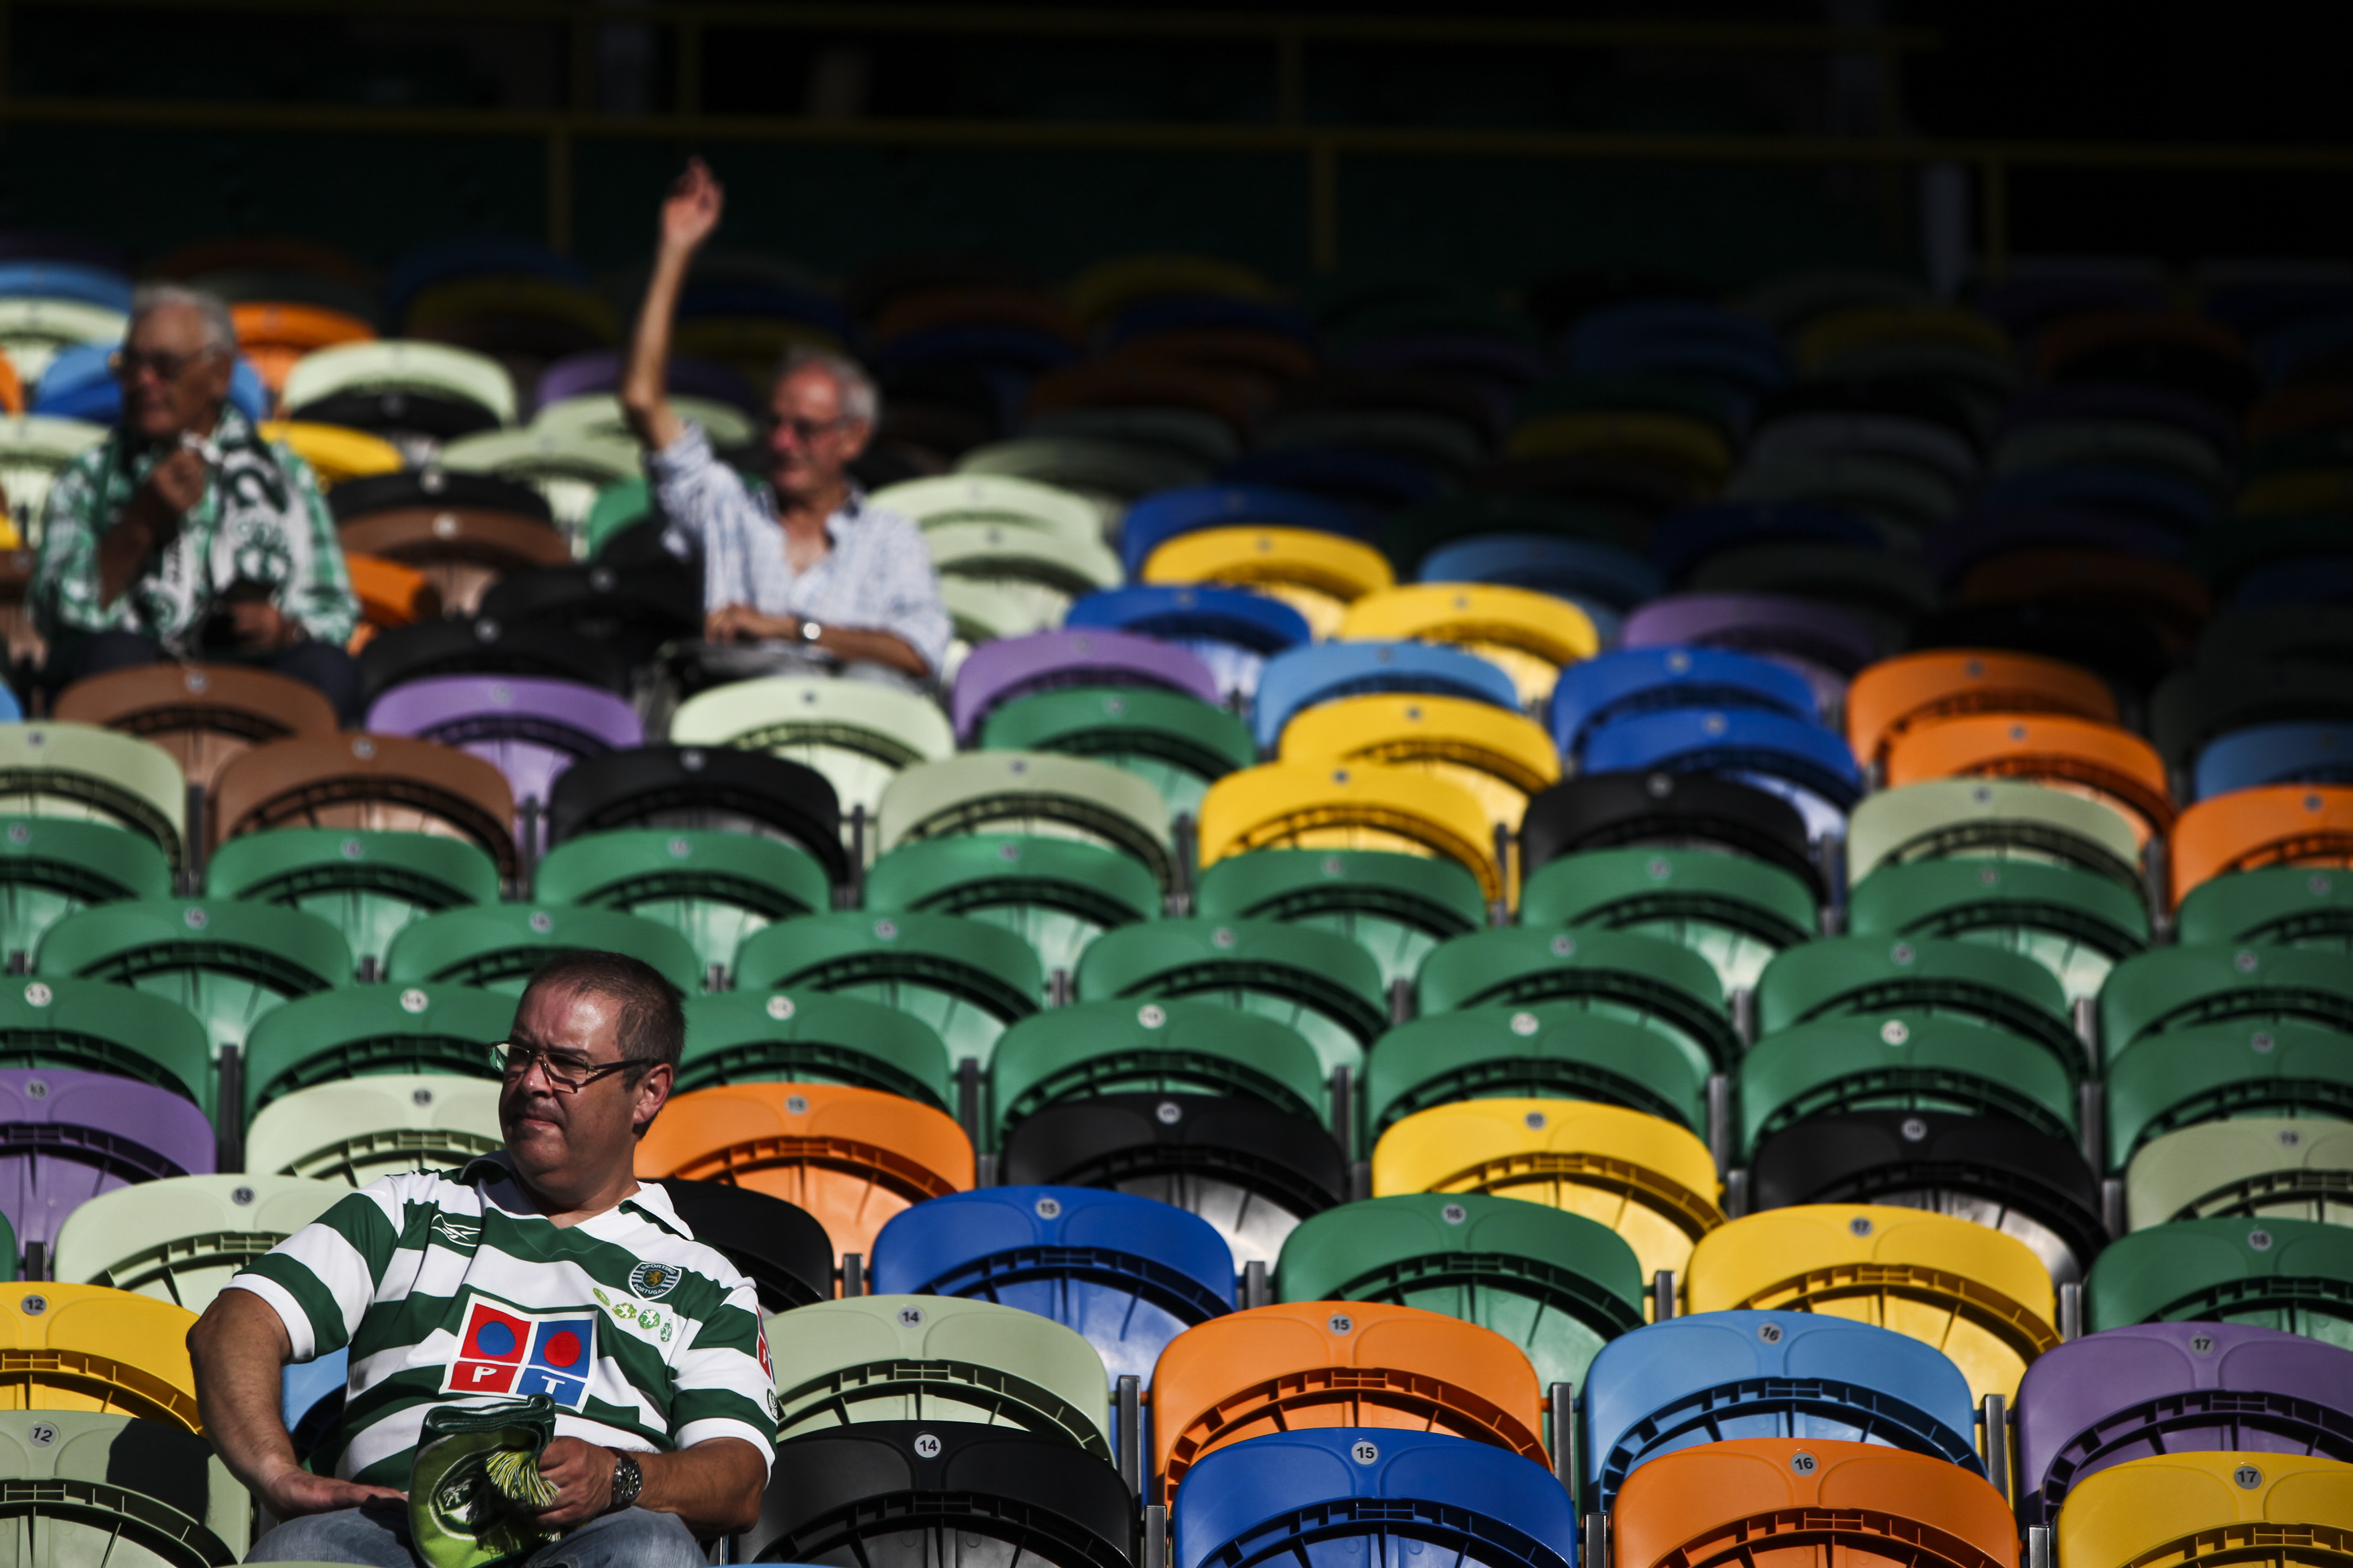 LISBON - AUGUST 13:A fan of Sporting Clube de Portugal before the Portuguese Primeira Liga ZON Sagres match between Sporting Lisbon and Olhanense at the Alvalade Stadium on August 13, 2011 in Lisbon,Portugal. (Photo by Patricia De Melo Moreira/EuroFootball/Getty Images)